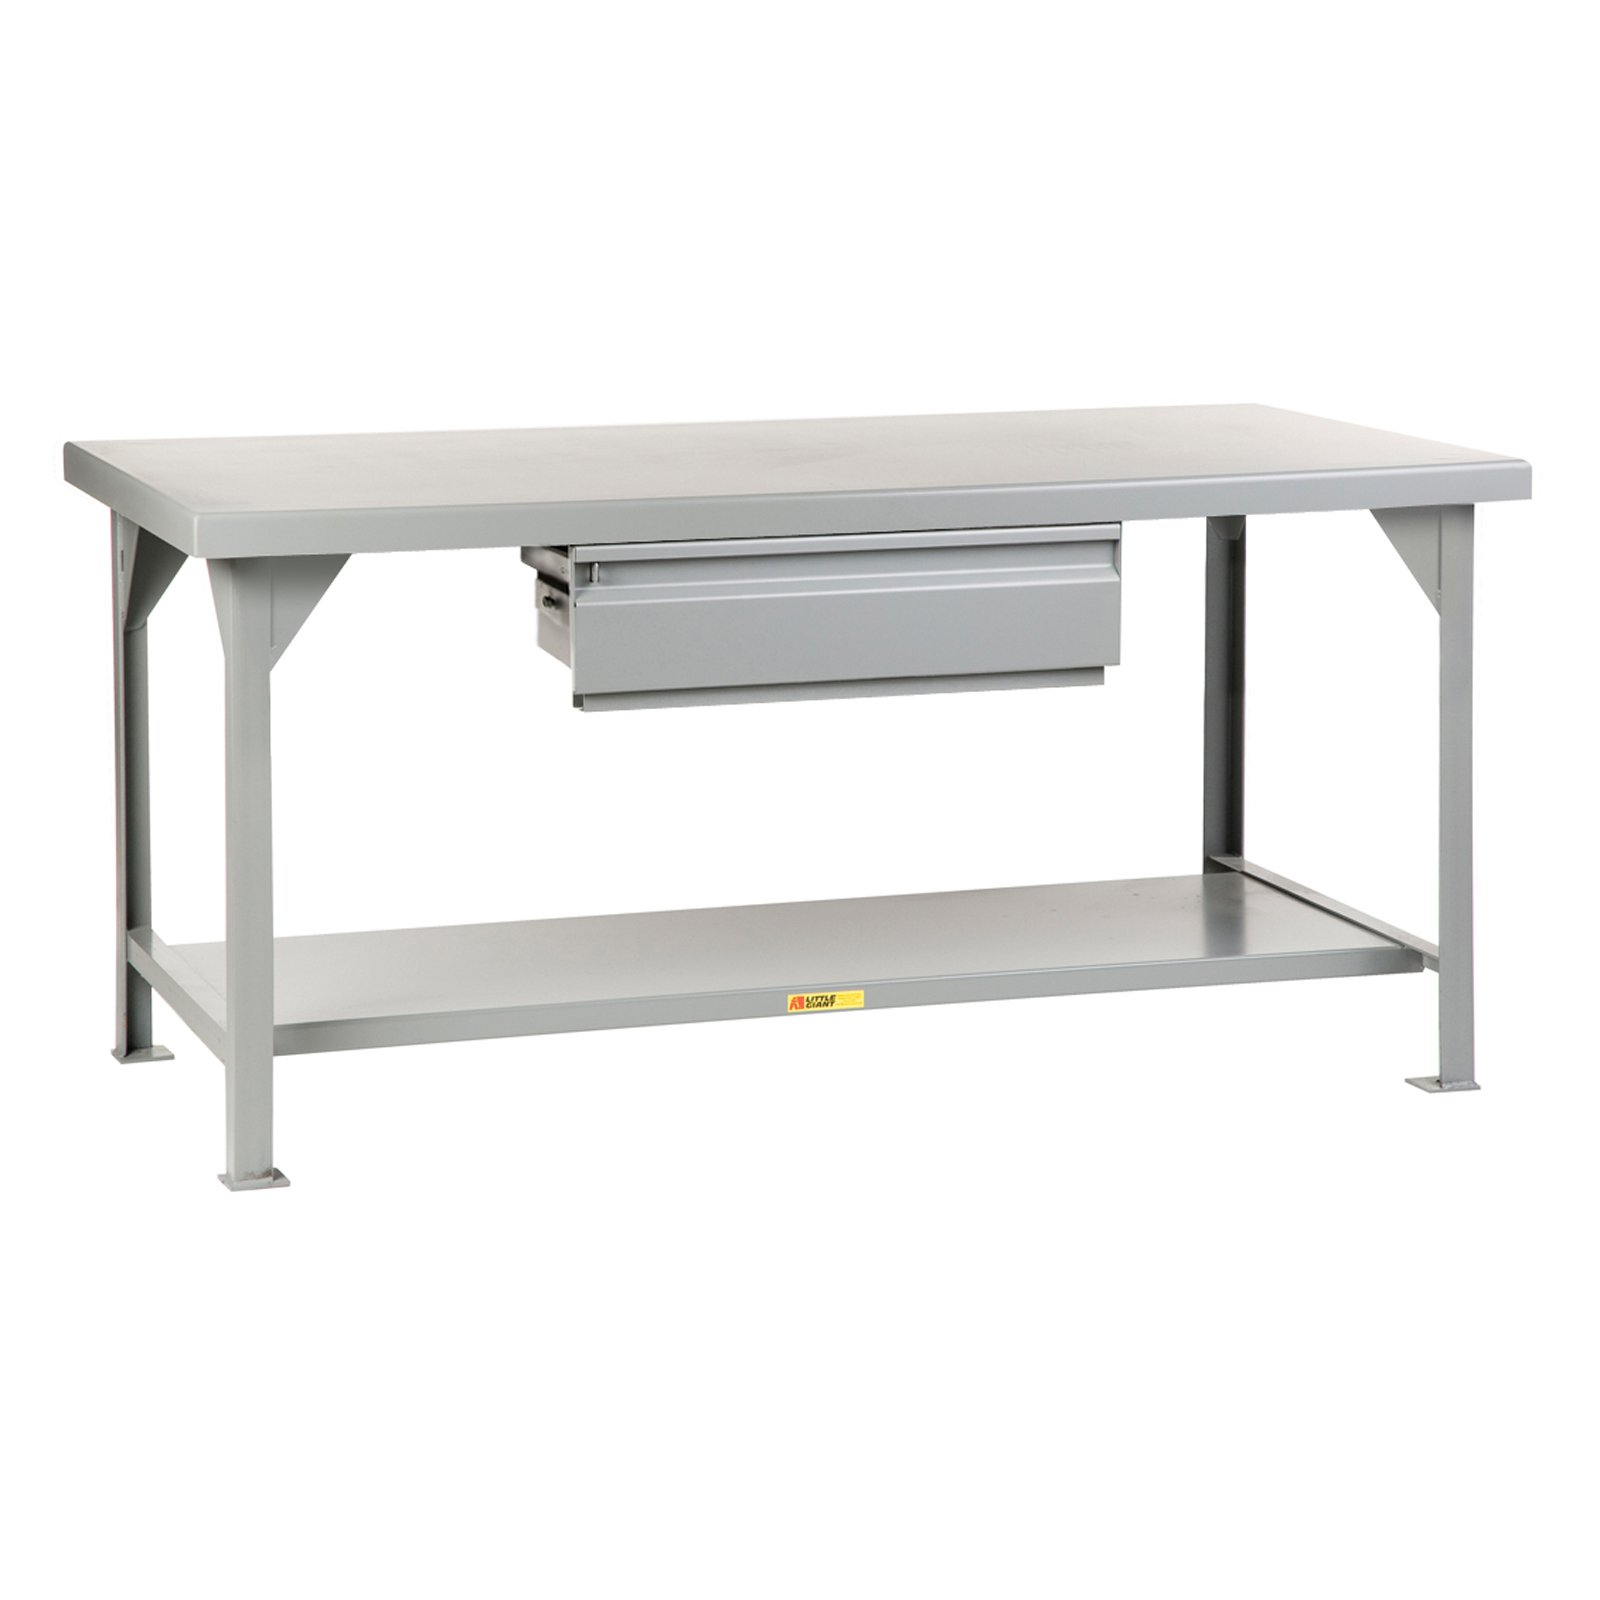 Little Giant Heavy-Duty Workbench with Drawer Fixed 30 x 48 in. by Brennan Equipment and Manufacturing Inc